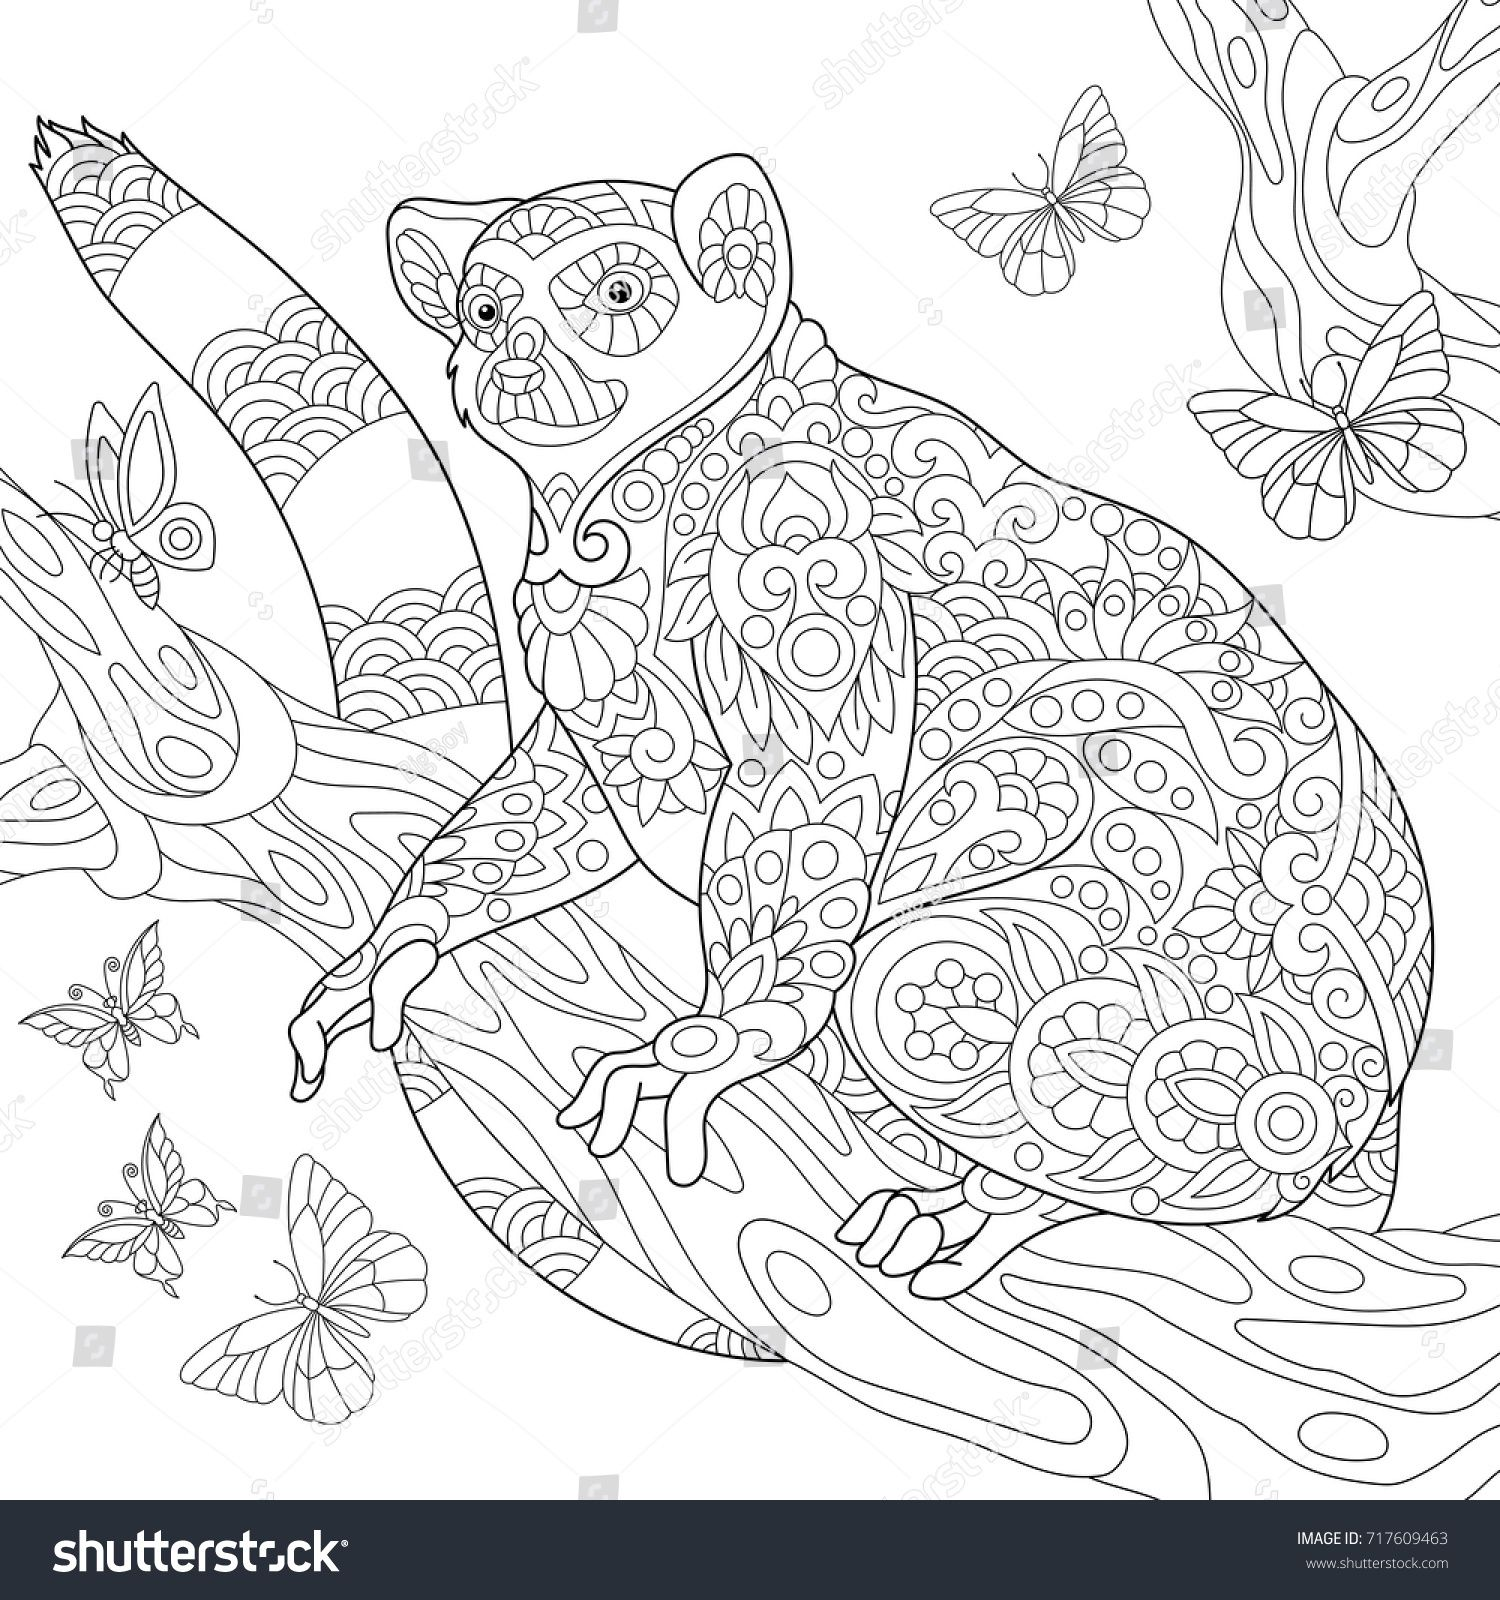 Coloring Pages Image By Beth Yowell On Patterns And Print Offs